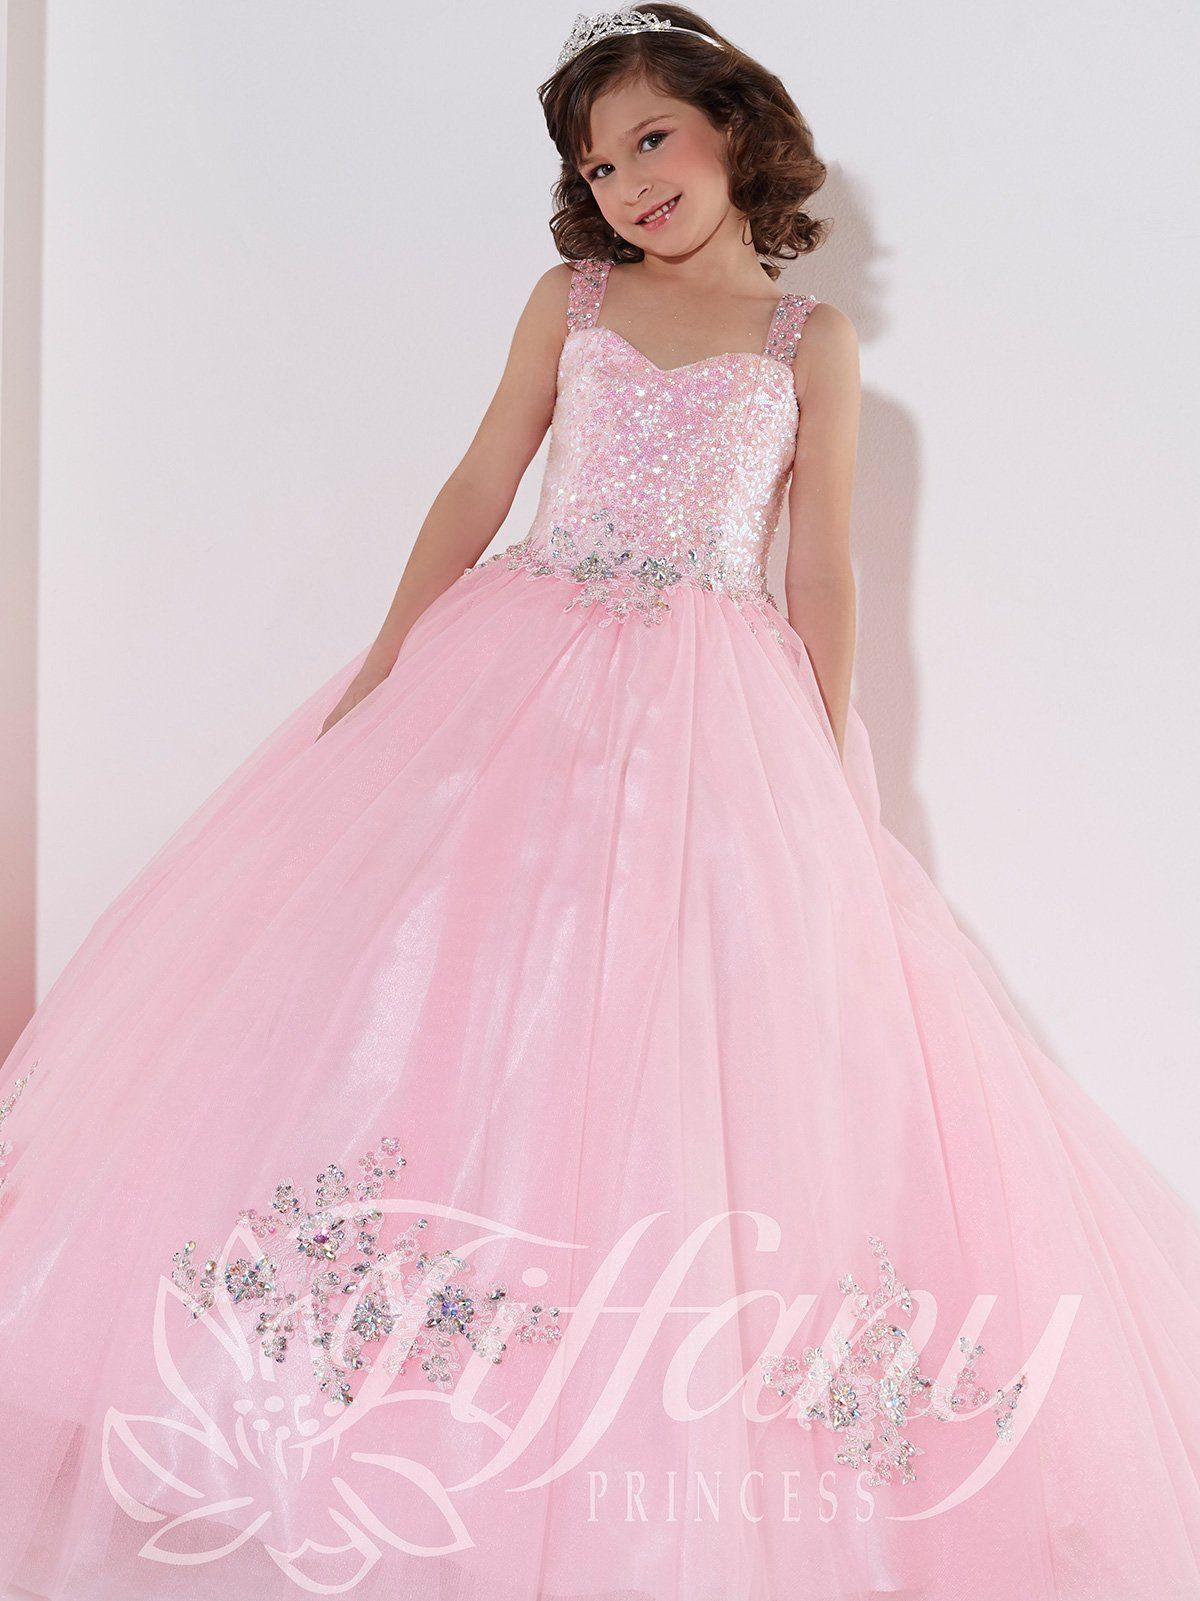 Girls Long Sequined Tulle Dress by Tiffany Princess 13395